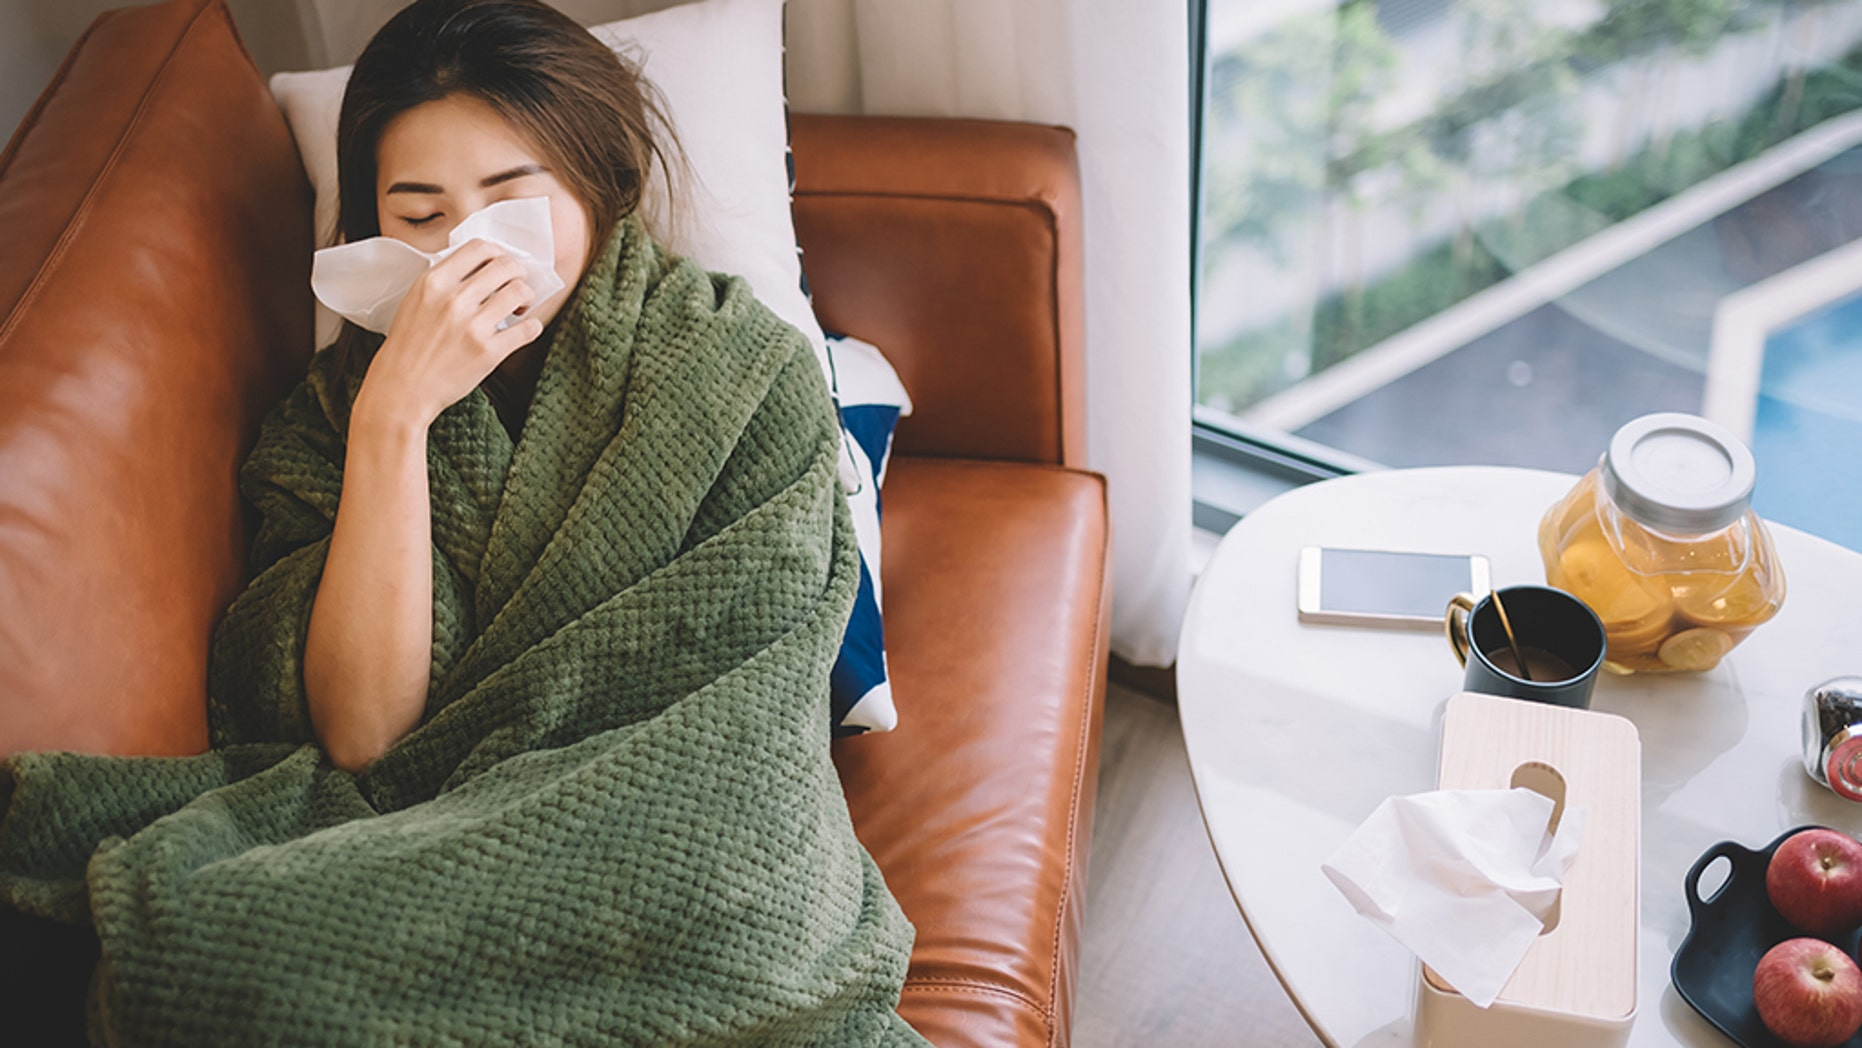 A company that sells used fabrics to allow consumers to decide when they get sick has reportedly been sold online for months.